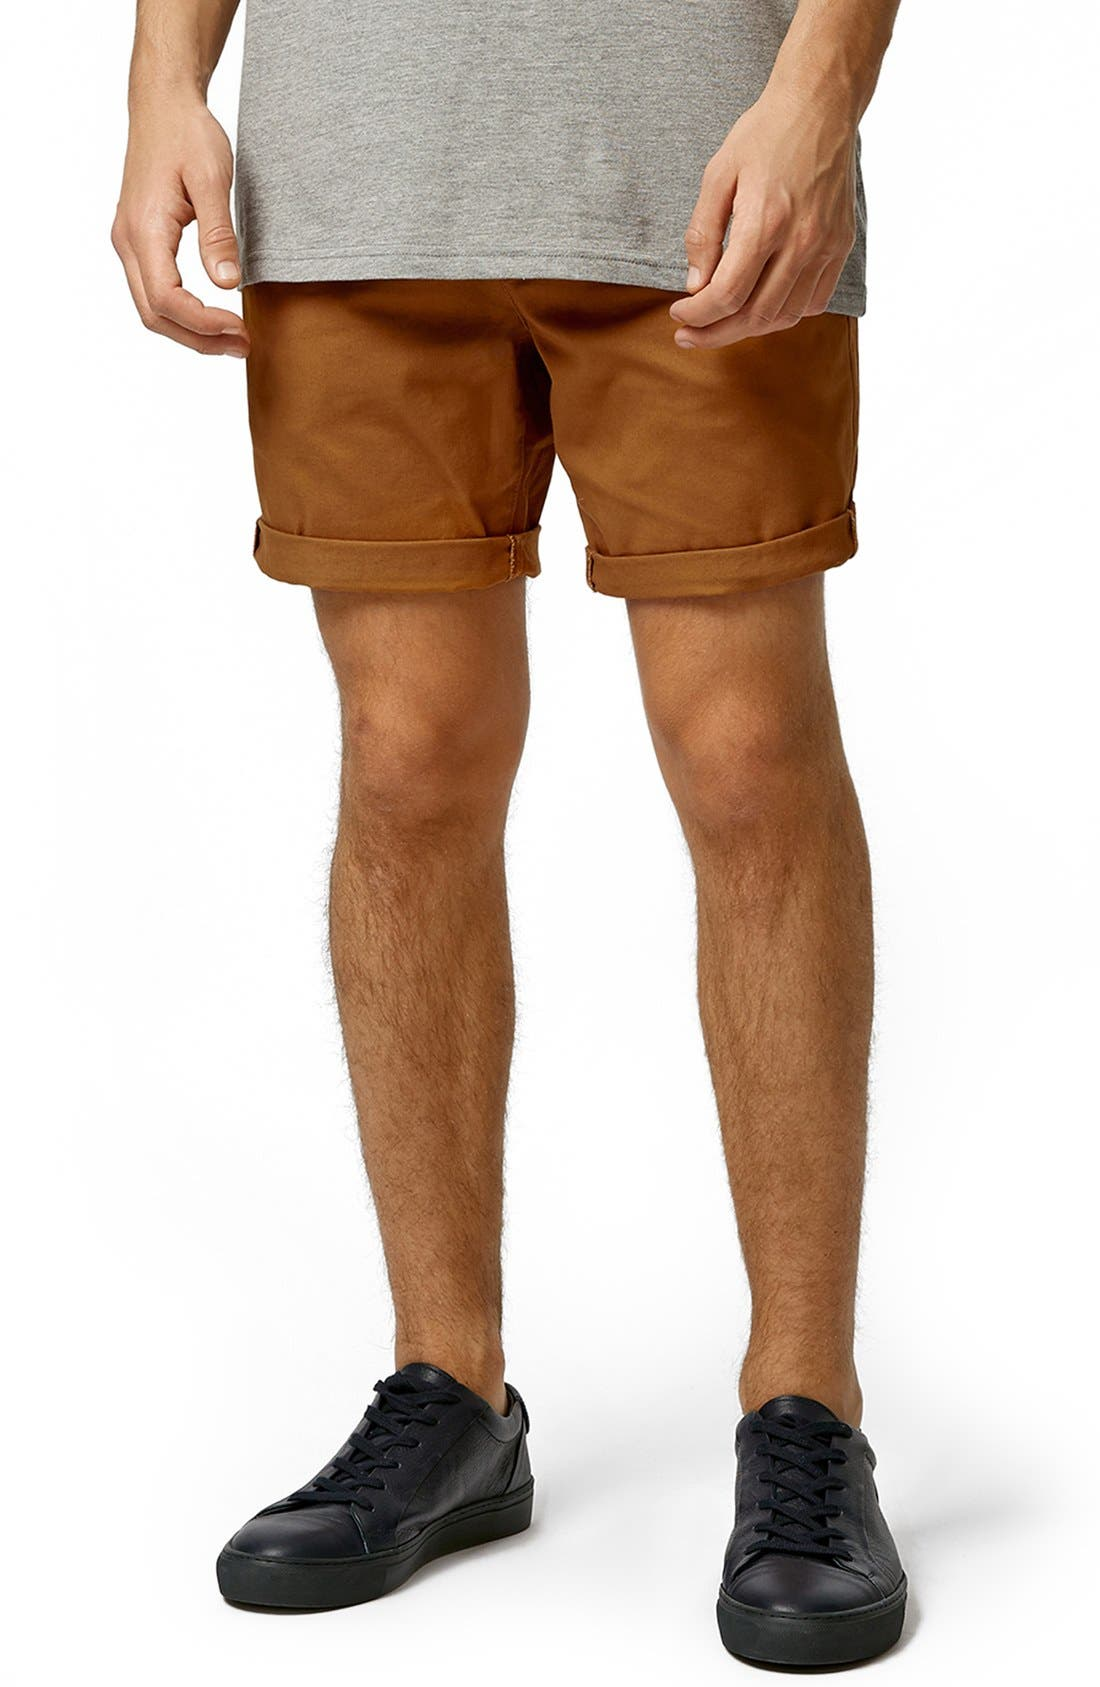 Chino Shorts,                         Main,                         color, Mustard